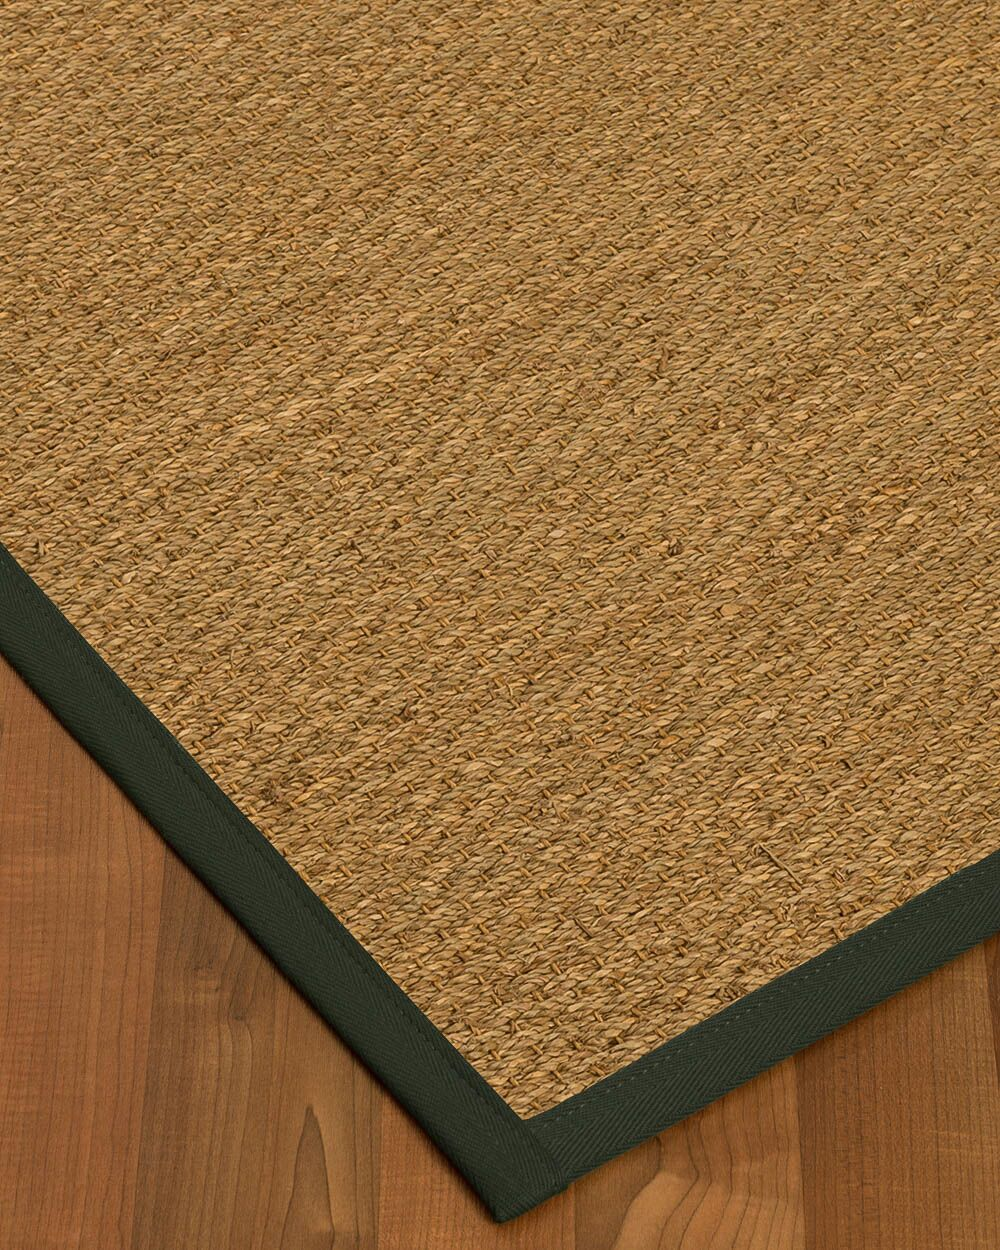 Kenton Border Hand-Woven Brown/Olive Area Rug Rug Size: Rectangle 4' x 6', Rug Pad Included: Yes